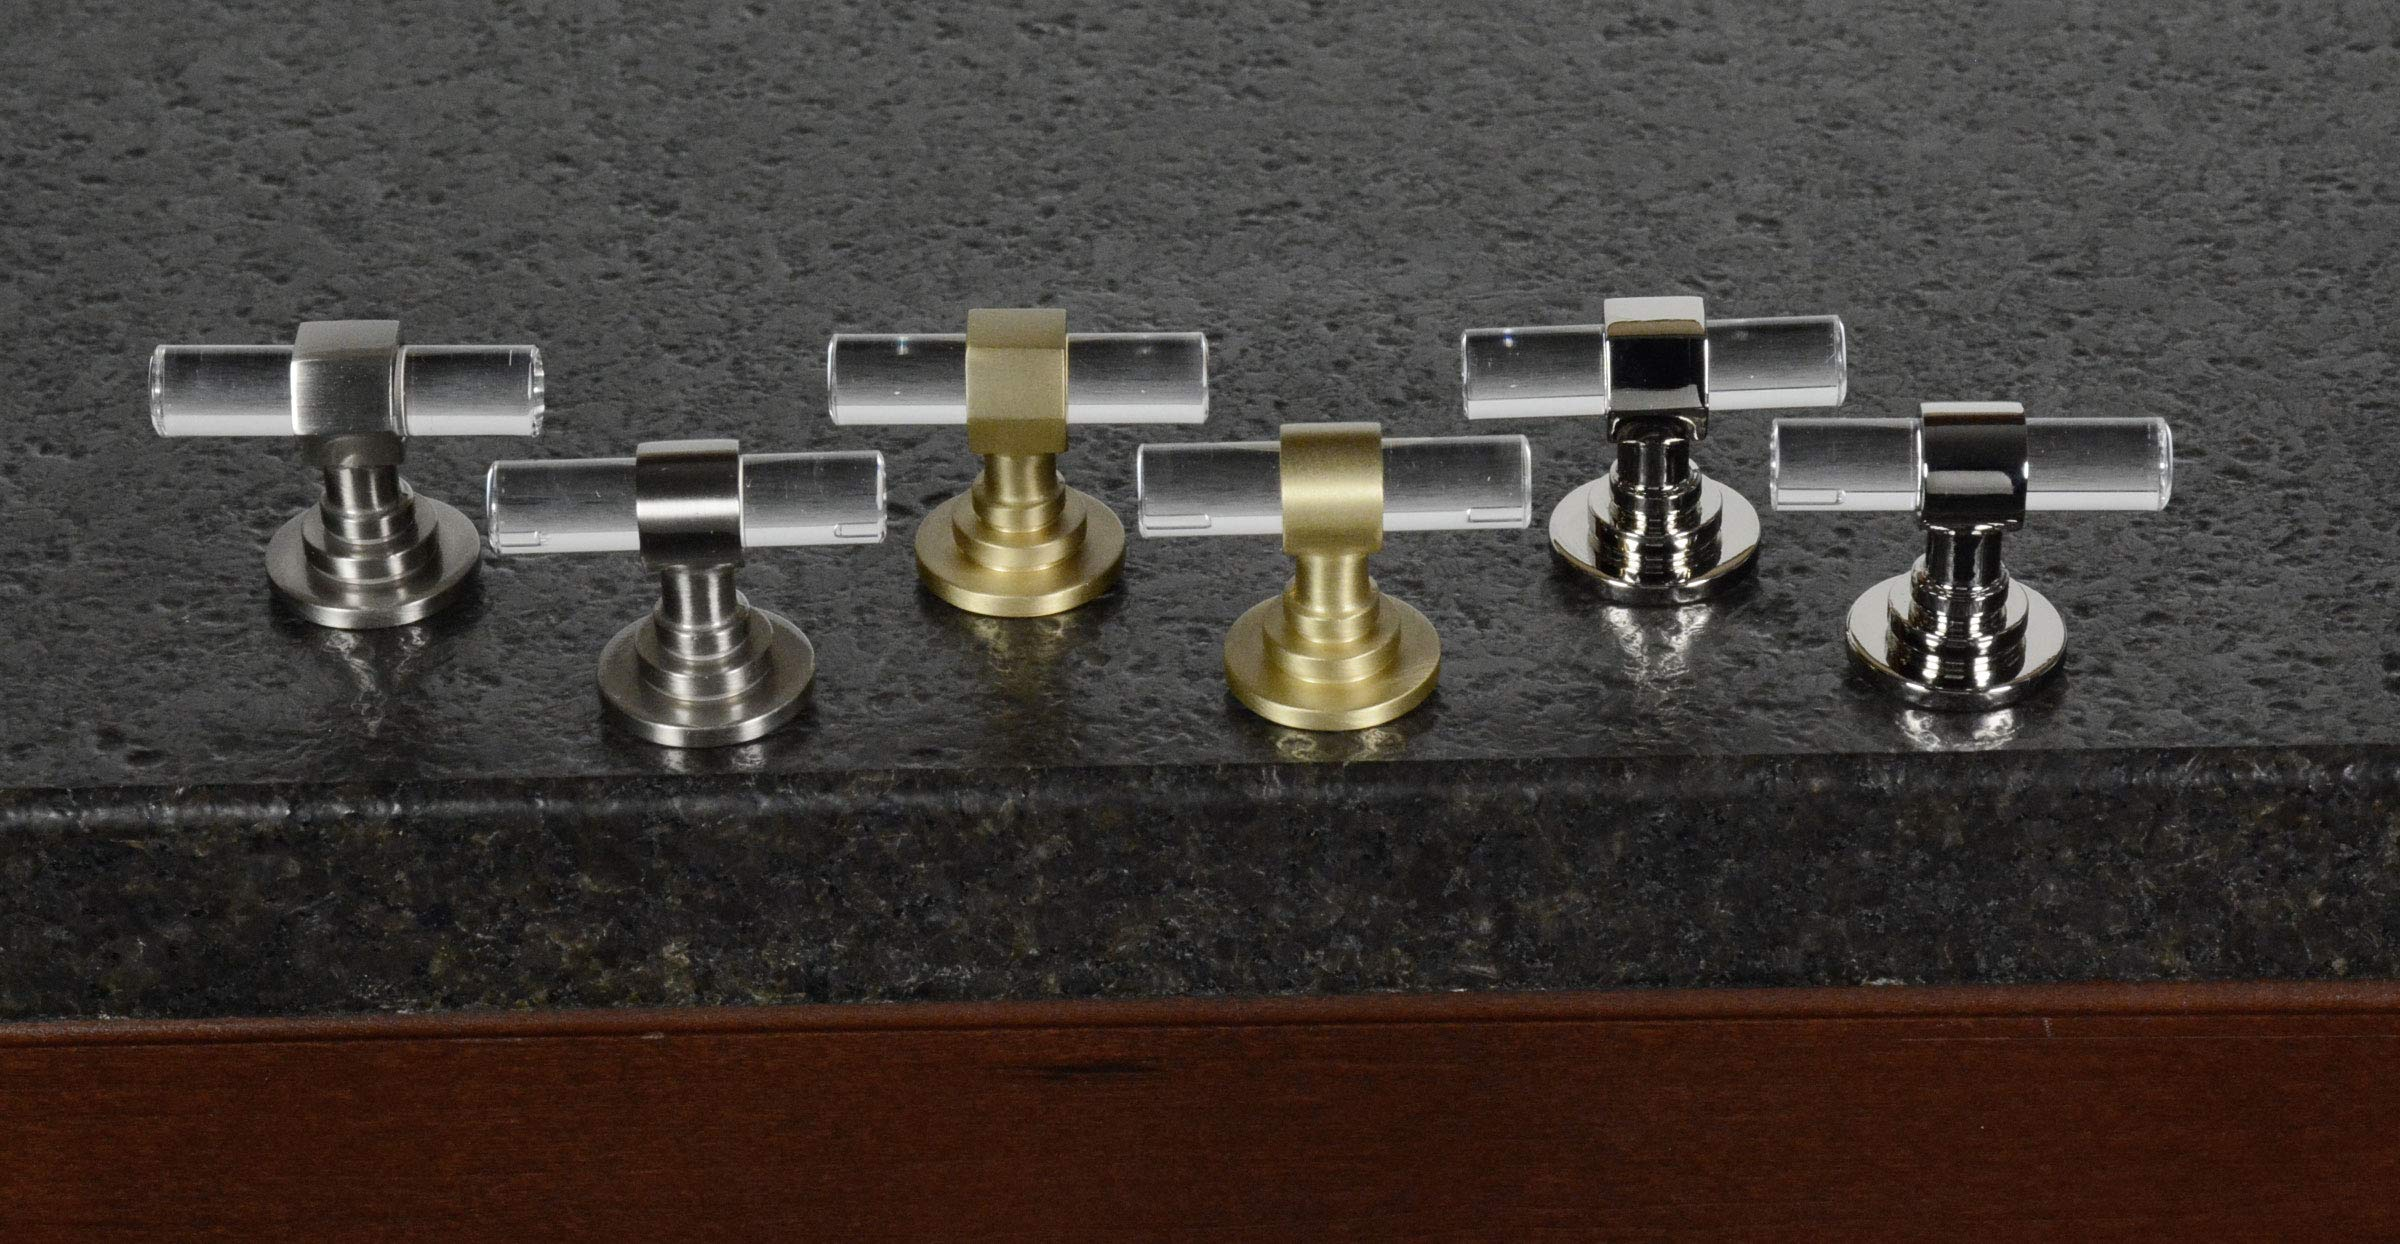 CKP Brand #750 Charlotte Collection T-Knob, Brushed Nickel/Clear - 10 Pack by CKP (Image #6)